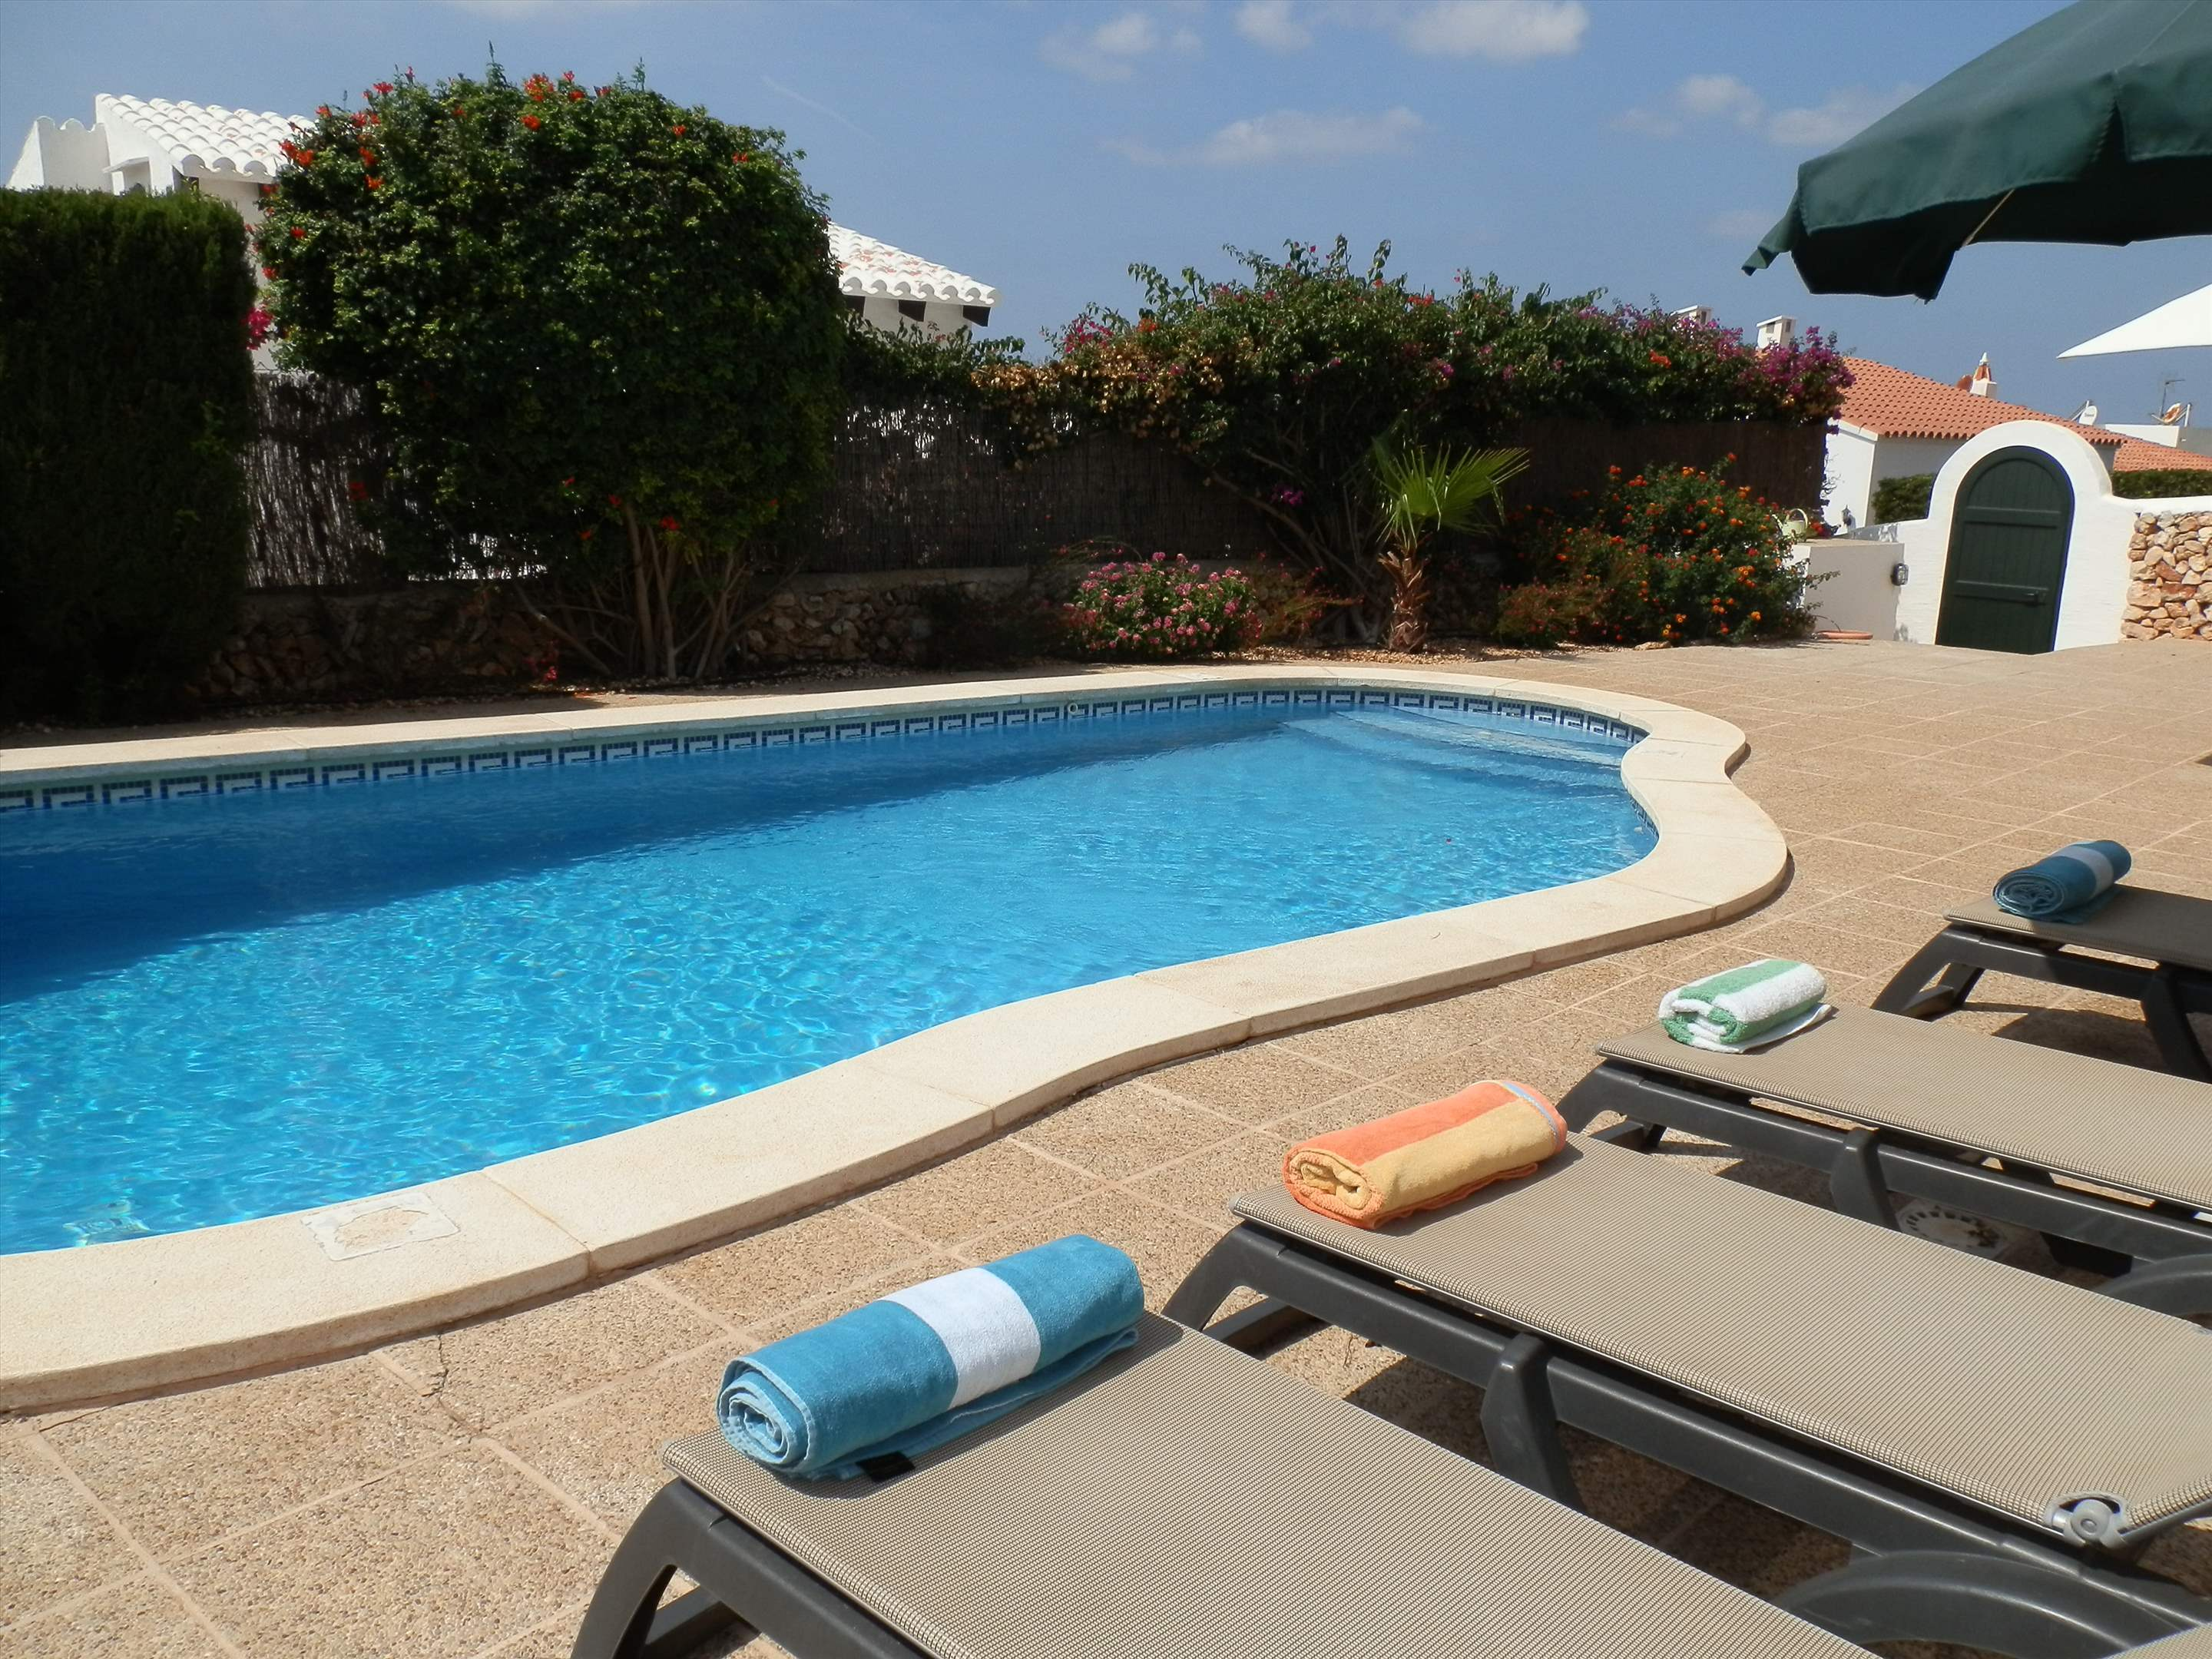 Villa La Palmera, 4 bedroom villa in Mahon, San Luis & South East, Menorca Photo #13